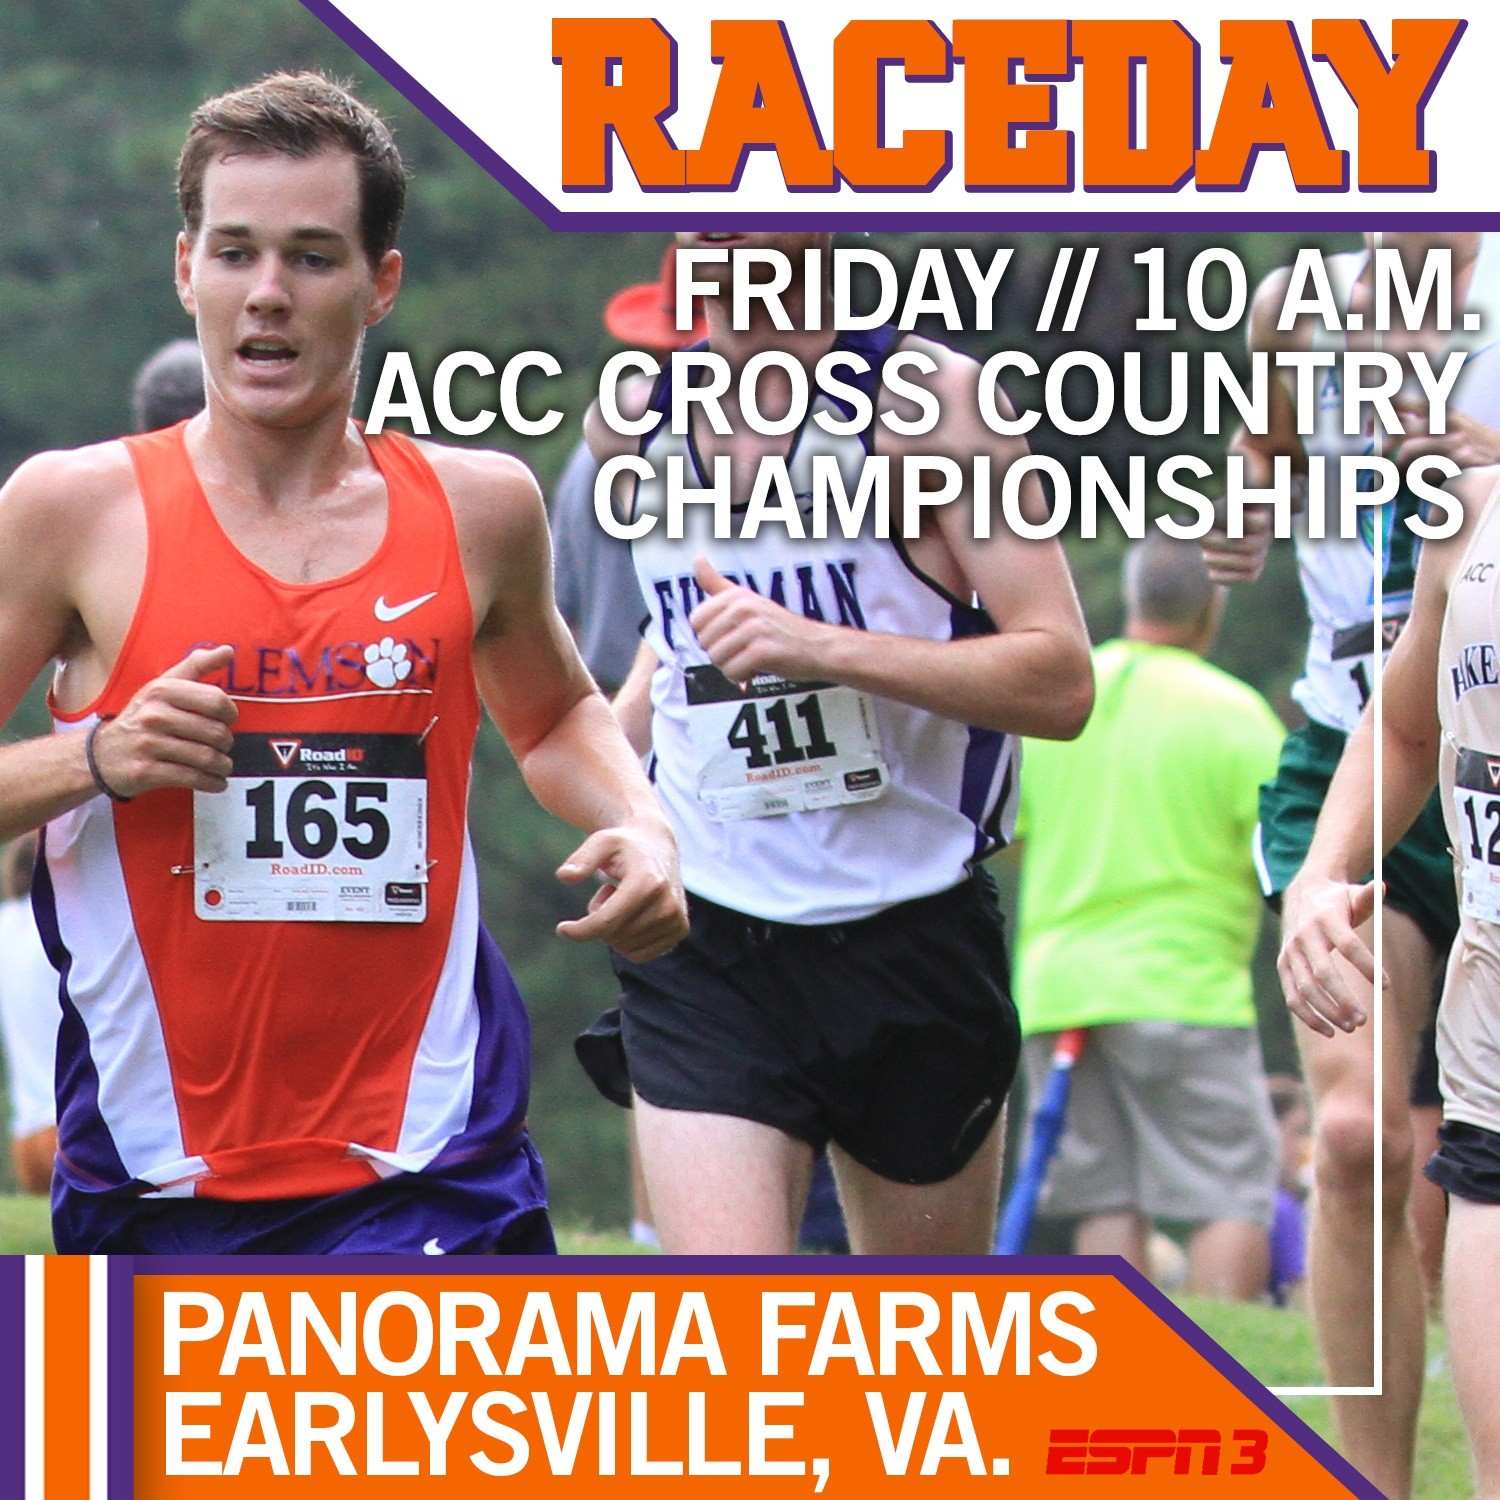 Tigers Ready for #ACCXC Championships